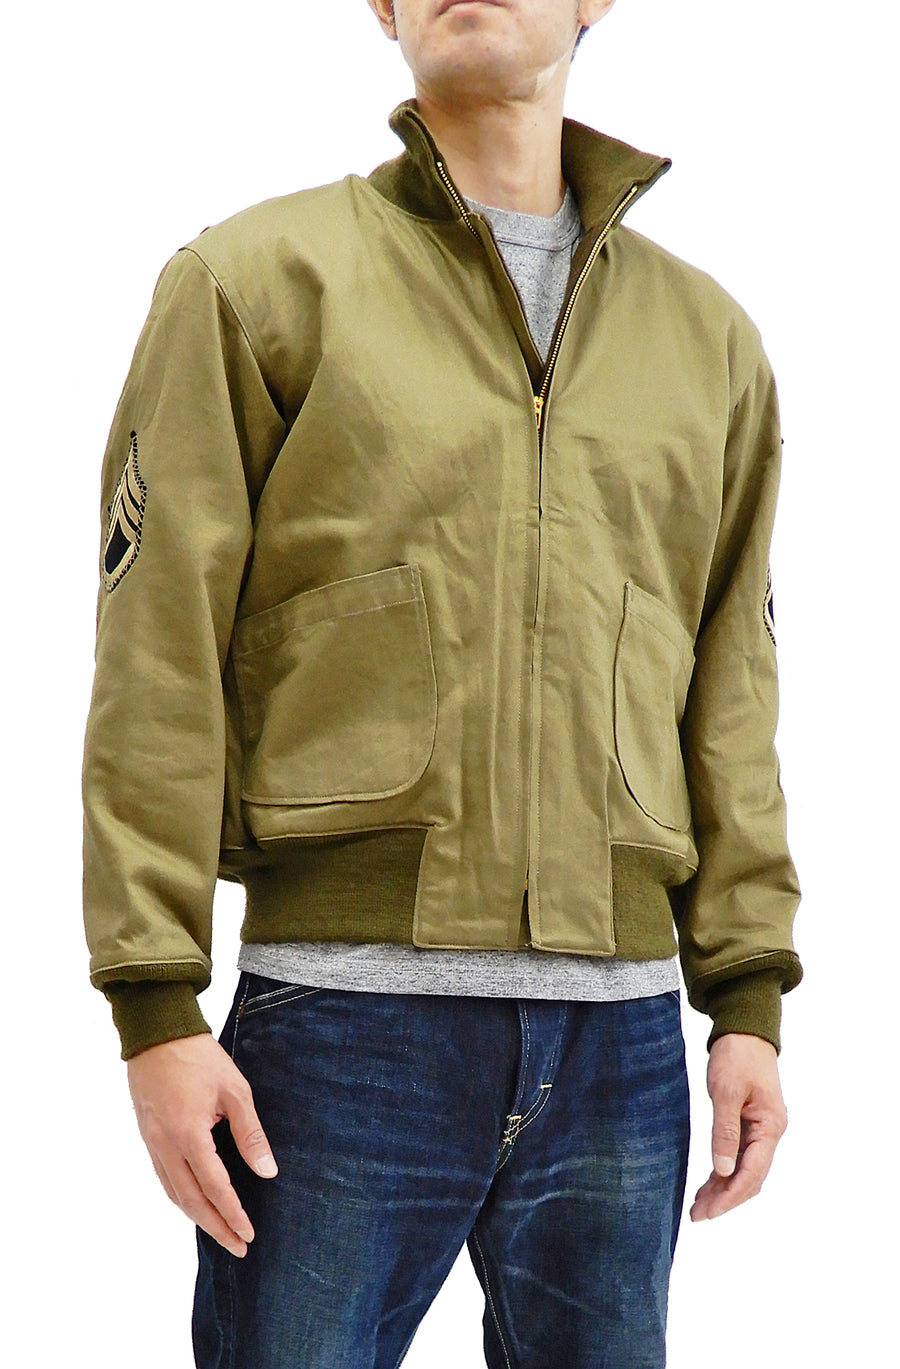 Buzz Rickson Men's Tank Jacket US Army Tanker Jacket Fury Brad Pitt Edition Tank Jacket BR13113